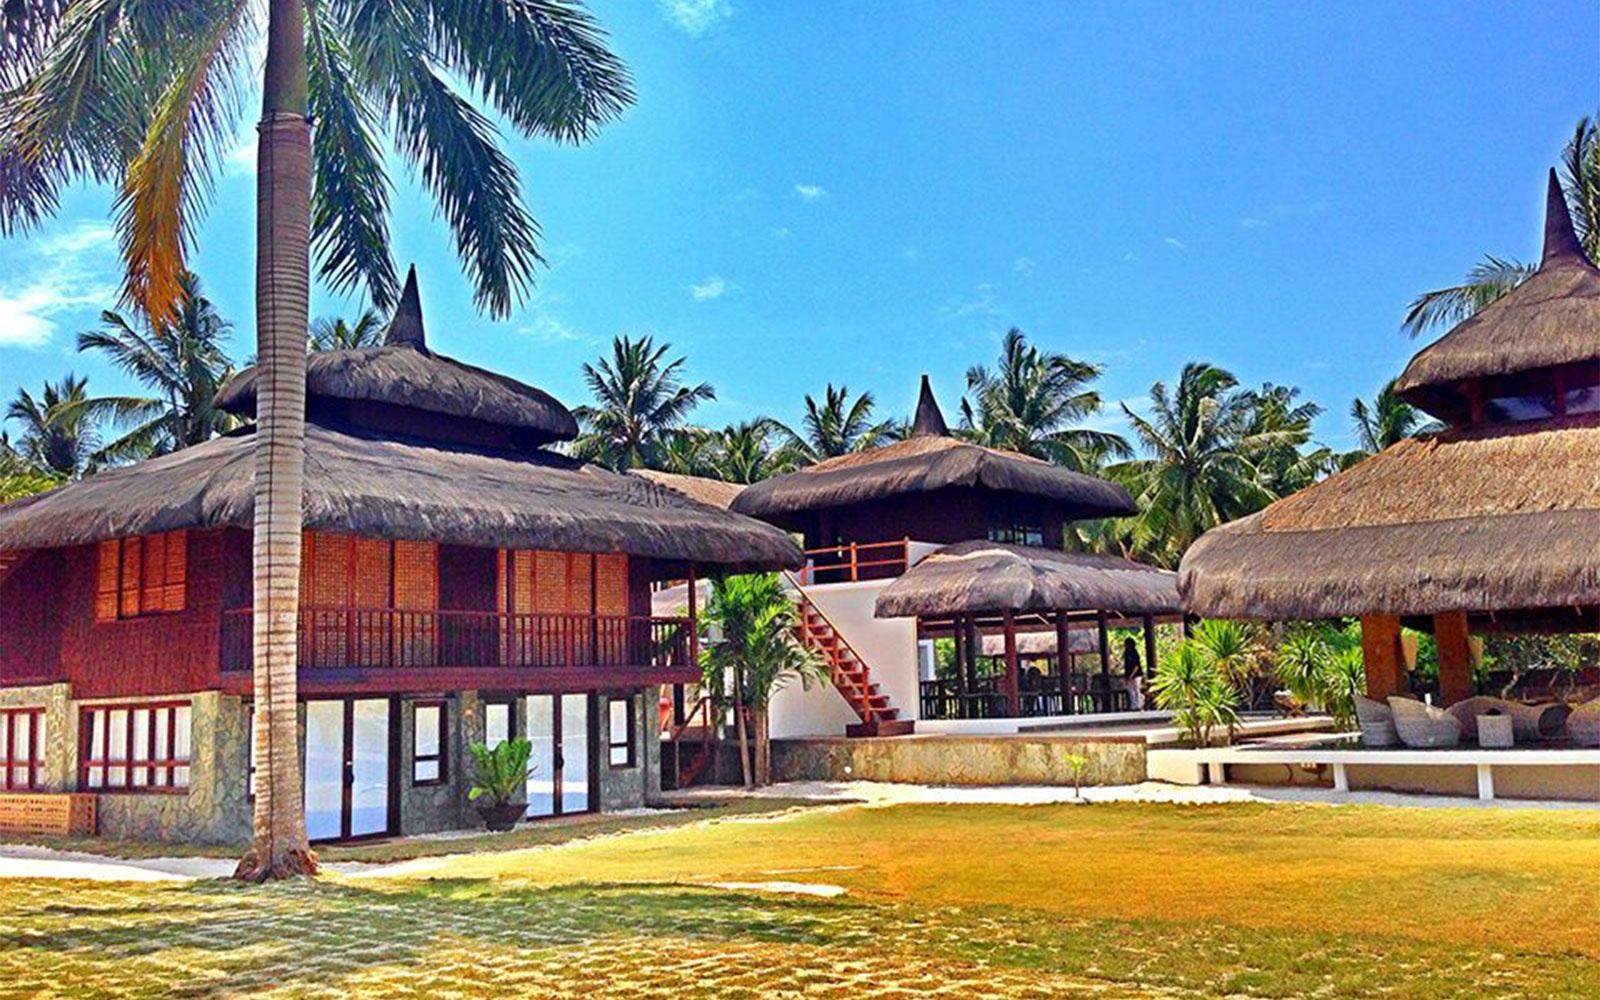 Ananyana Beach Resort & Spa, Panglao Island, Philippines